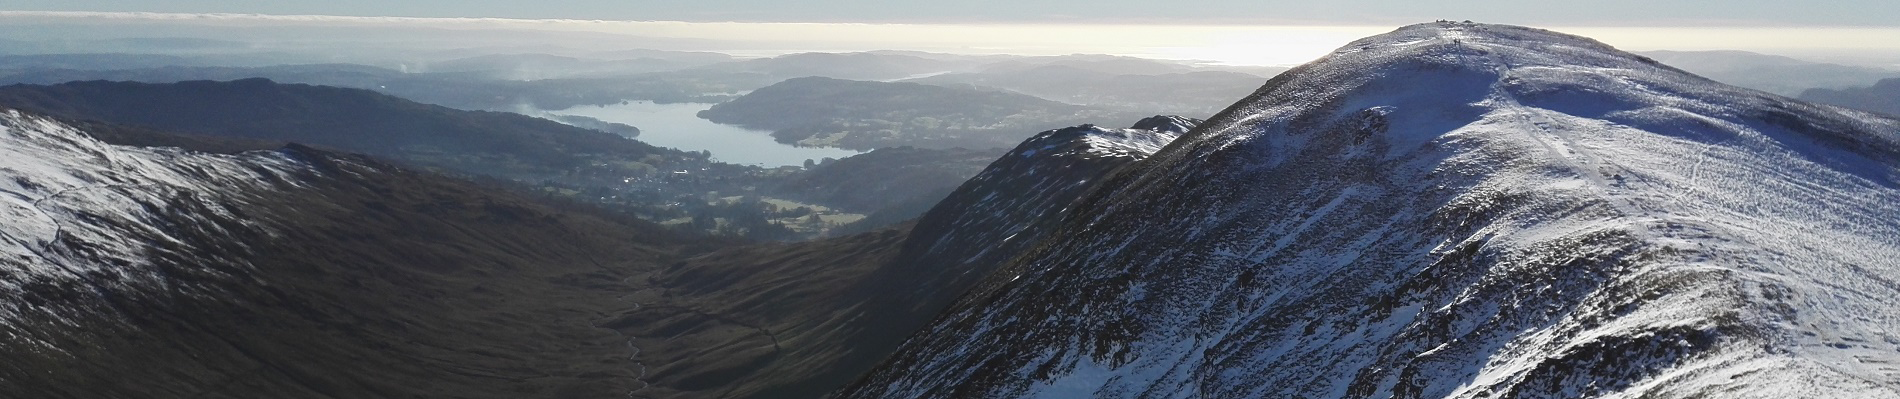 Fairfield Horseshoe 2018